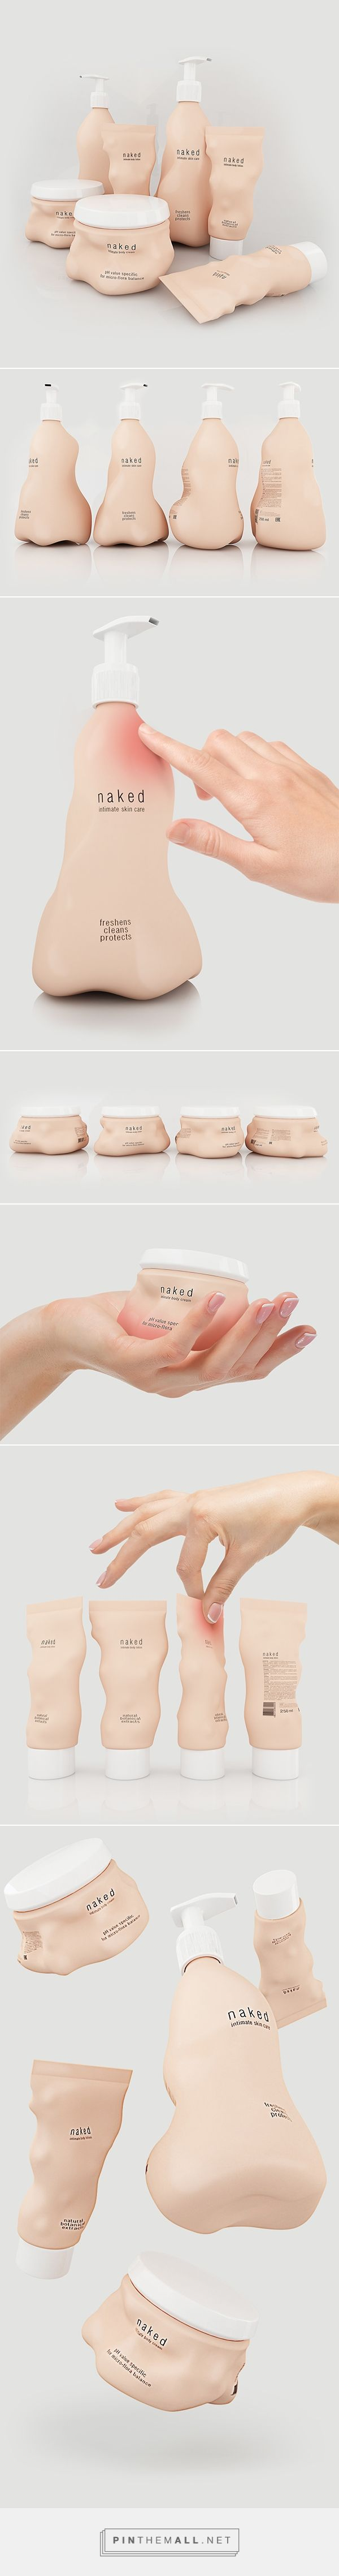 Intimate Care Products Package Concept designed by Stas Neretin clever and popular PD